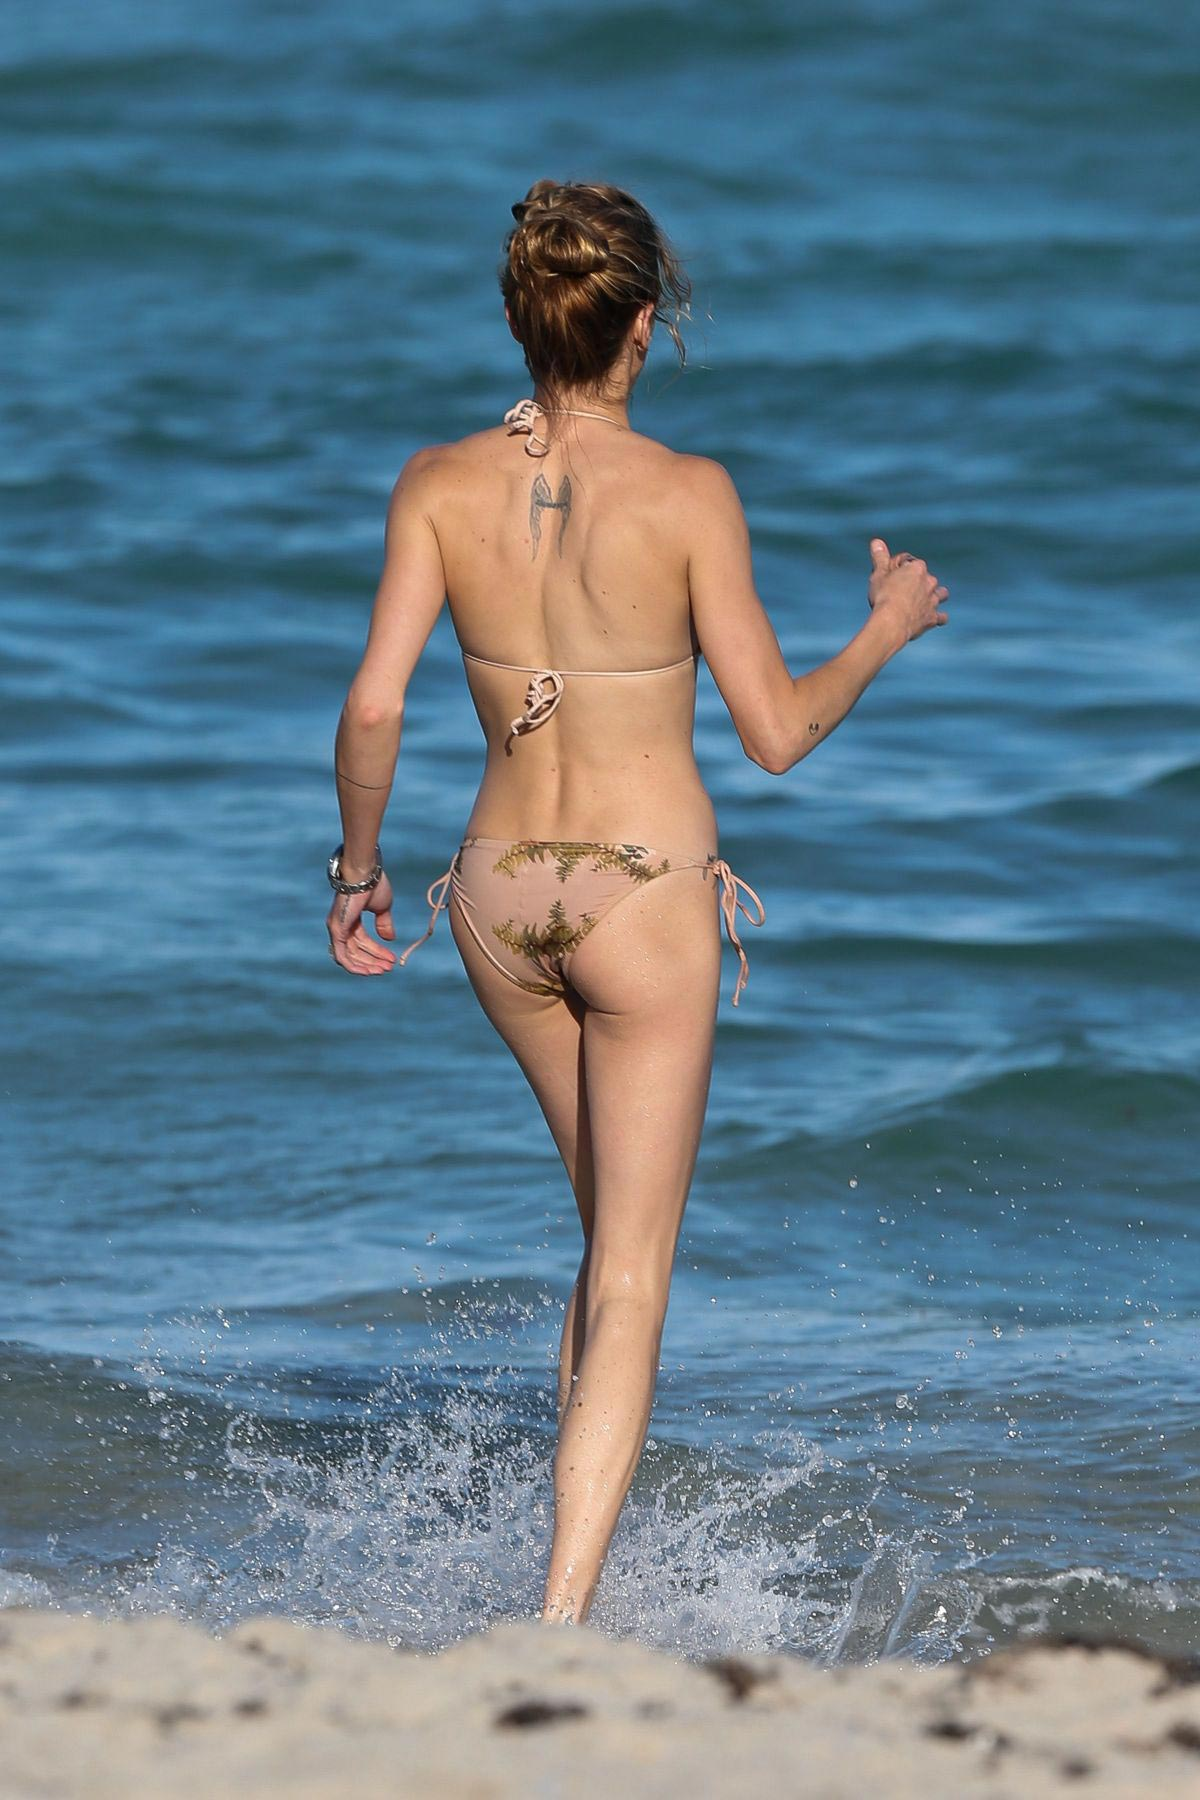 Aus Sonnyphotosfiji also Chloe Sevigny In Bikini At A Pool In Miami additionally Carine as well Mermaid likewise Katie Cassidy In Bikini At A Beach In Miami. on post